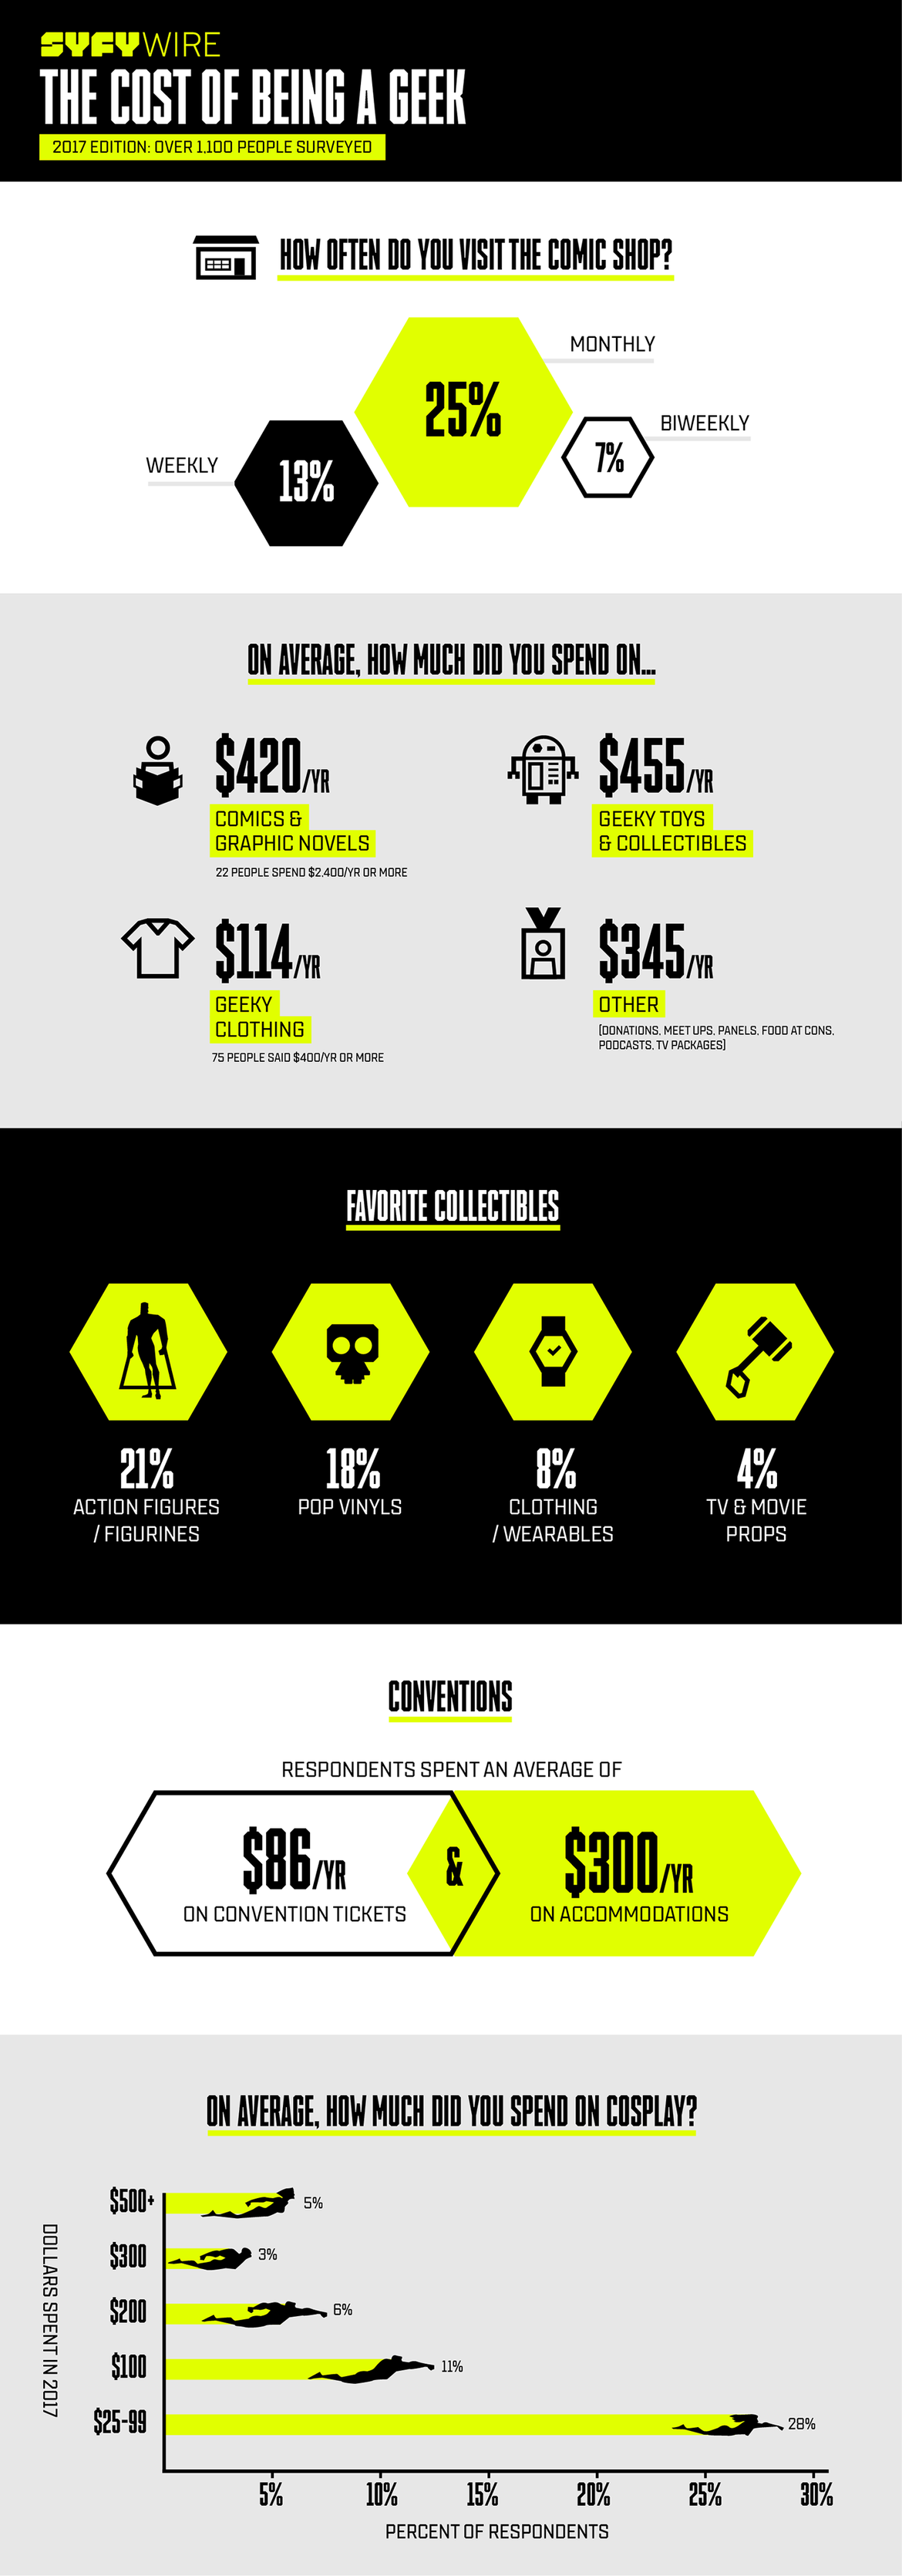 Cost of Being a Geek infographic